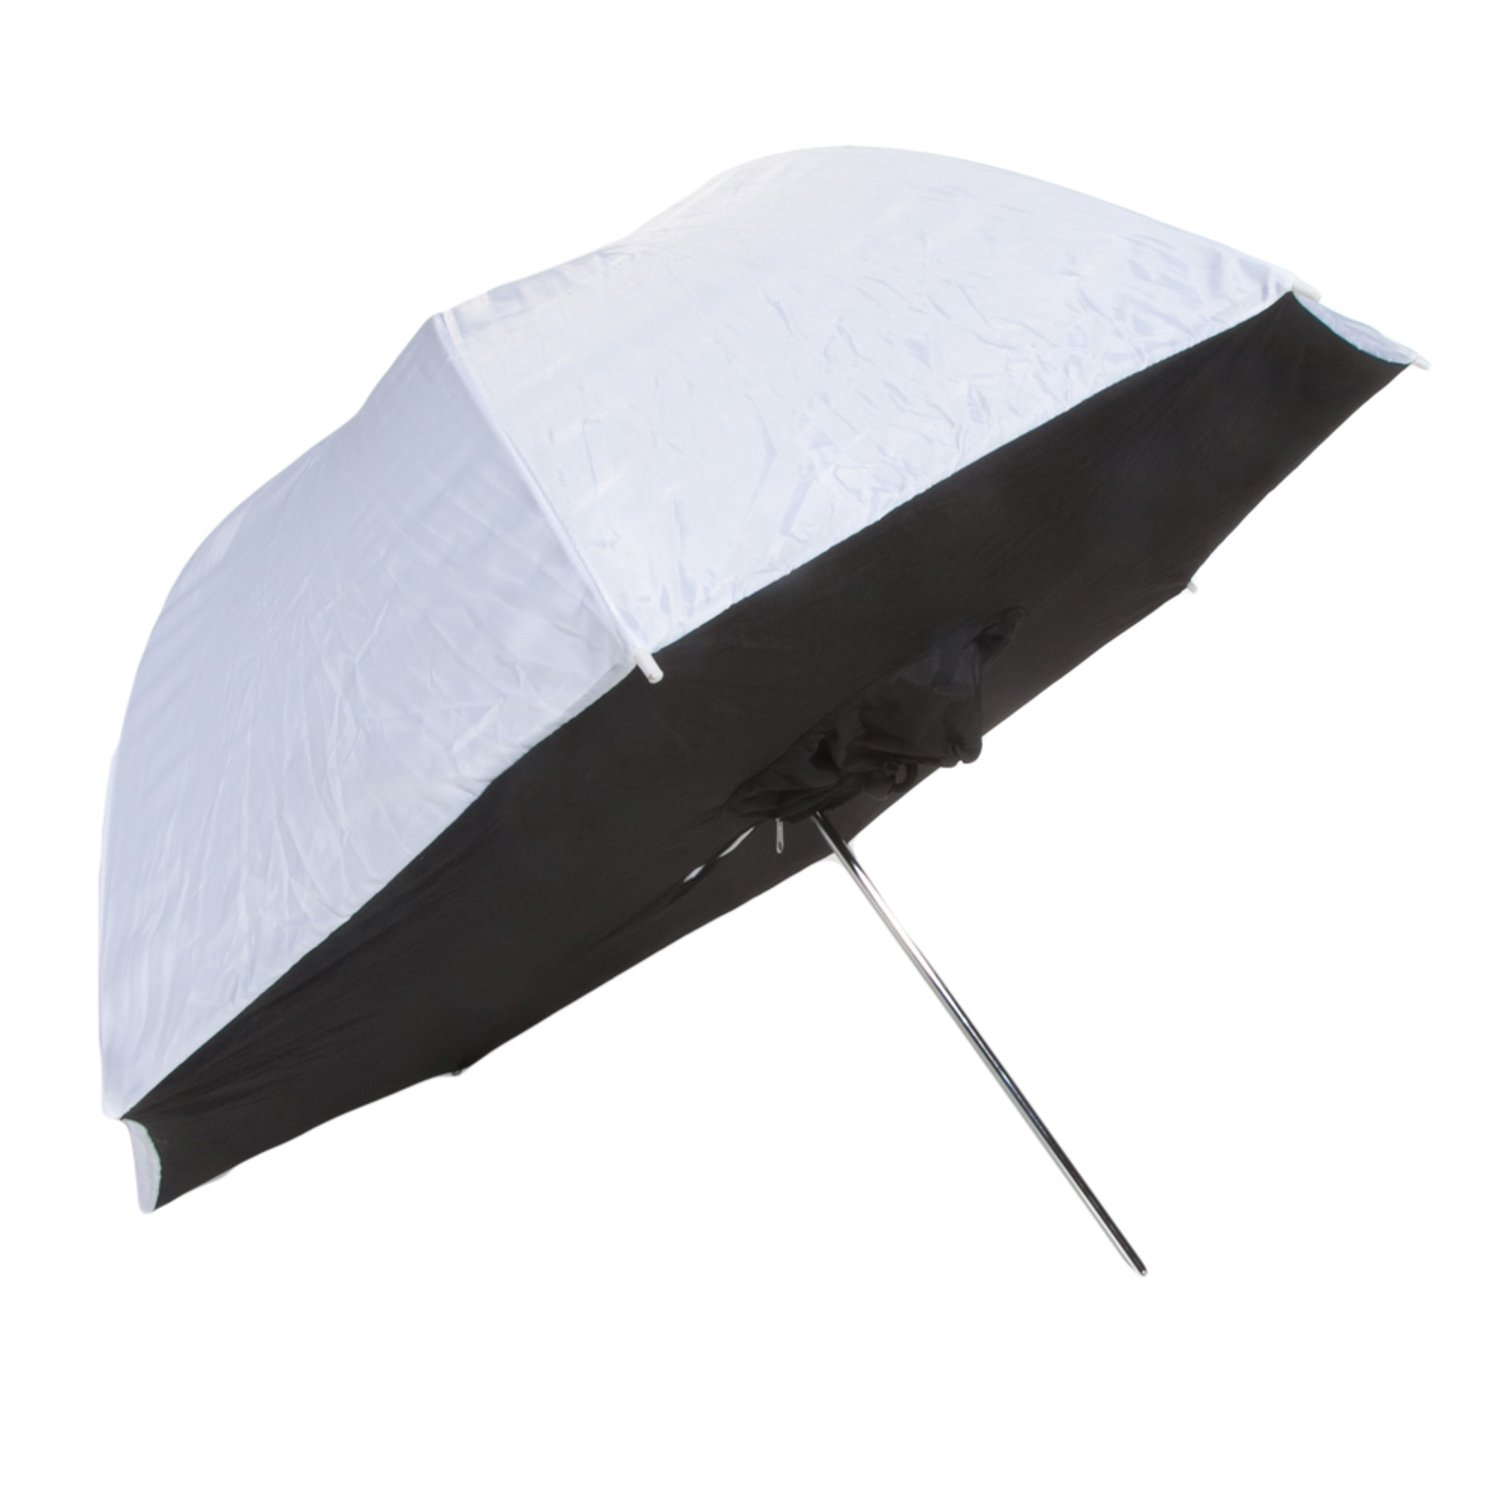 StudioPRO 43 Inch White on Black Photography Studio Brolly Box